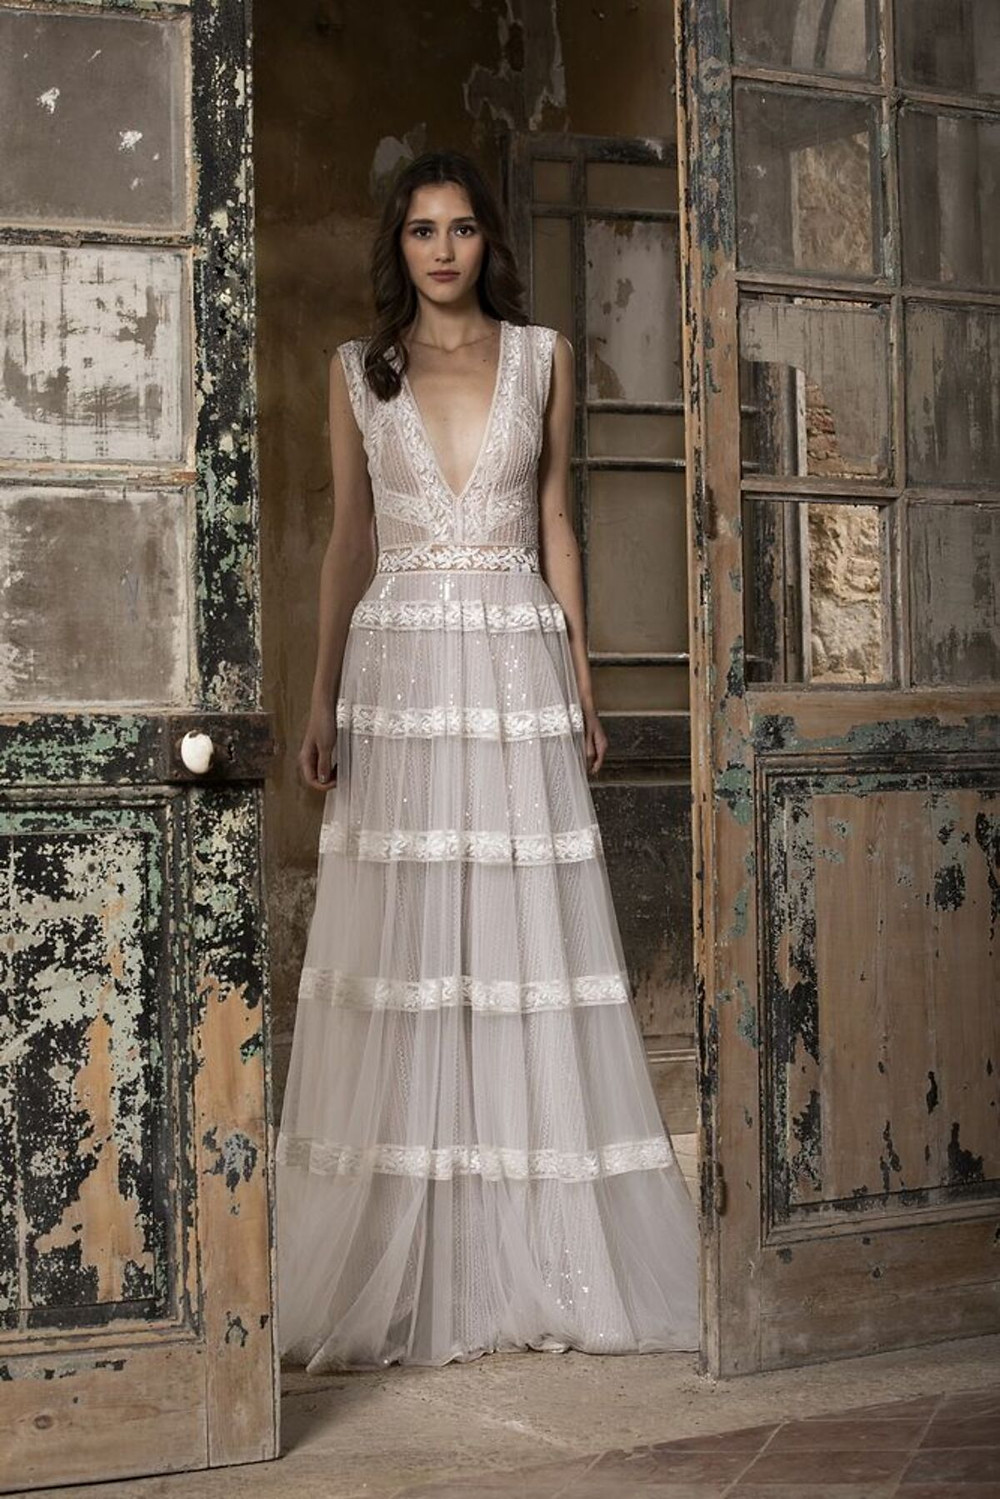 An A-line wedding gown featuring a plunging neckline enriched with delicate lace bands and sequence detailing